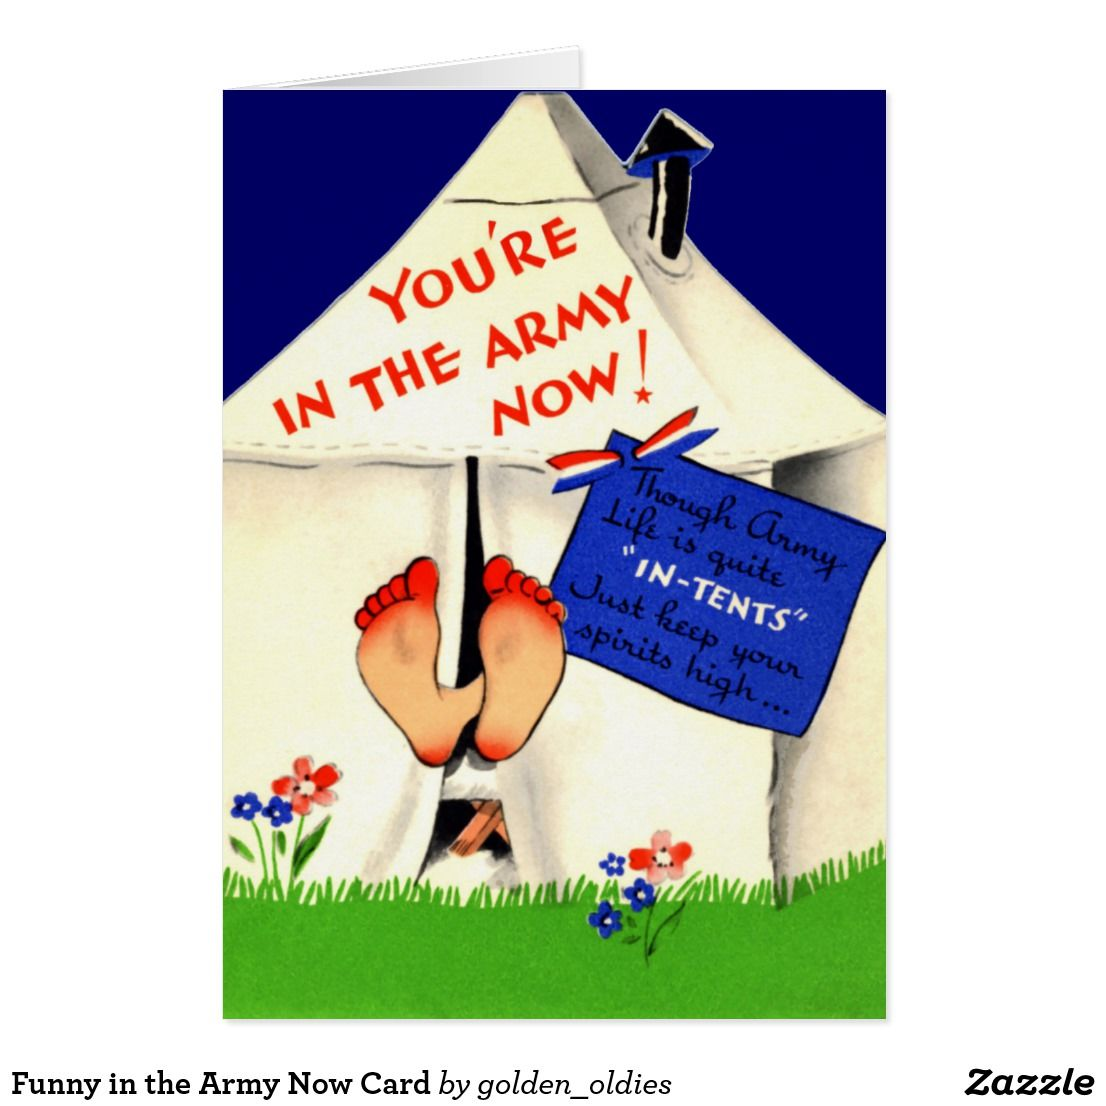 Funny in the army now card funny greeting cards pinterest army funny in the army now card kristyandbryce Choice Image